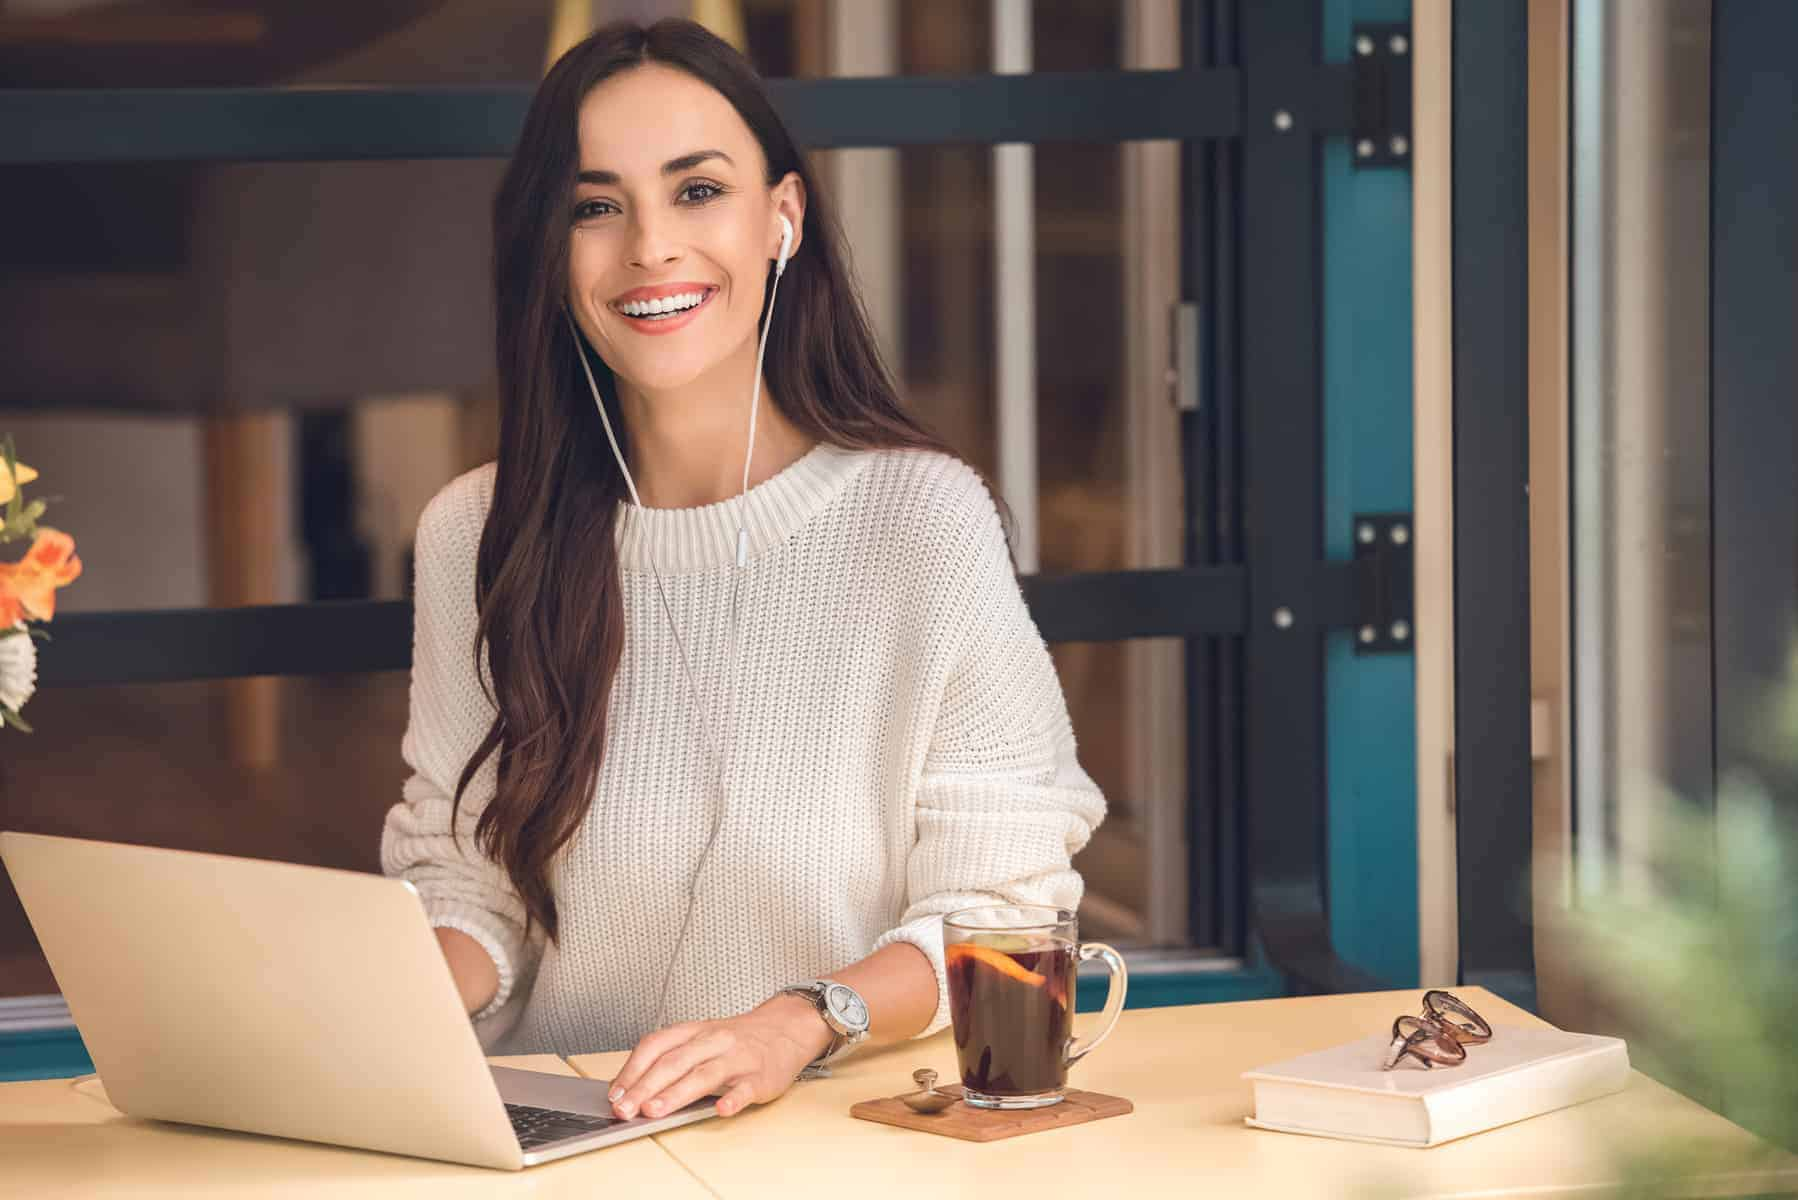 brunette young woman on laptop smiling